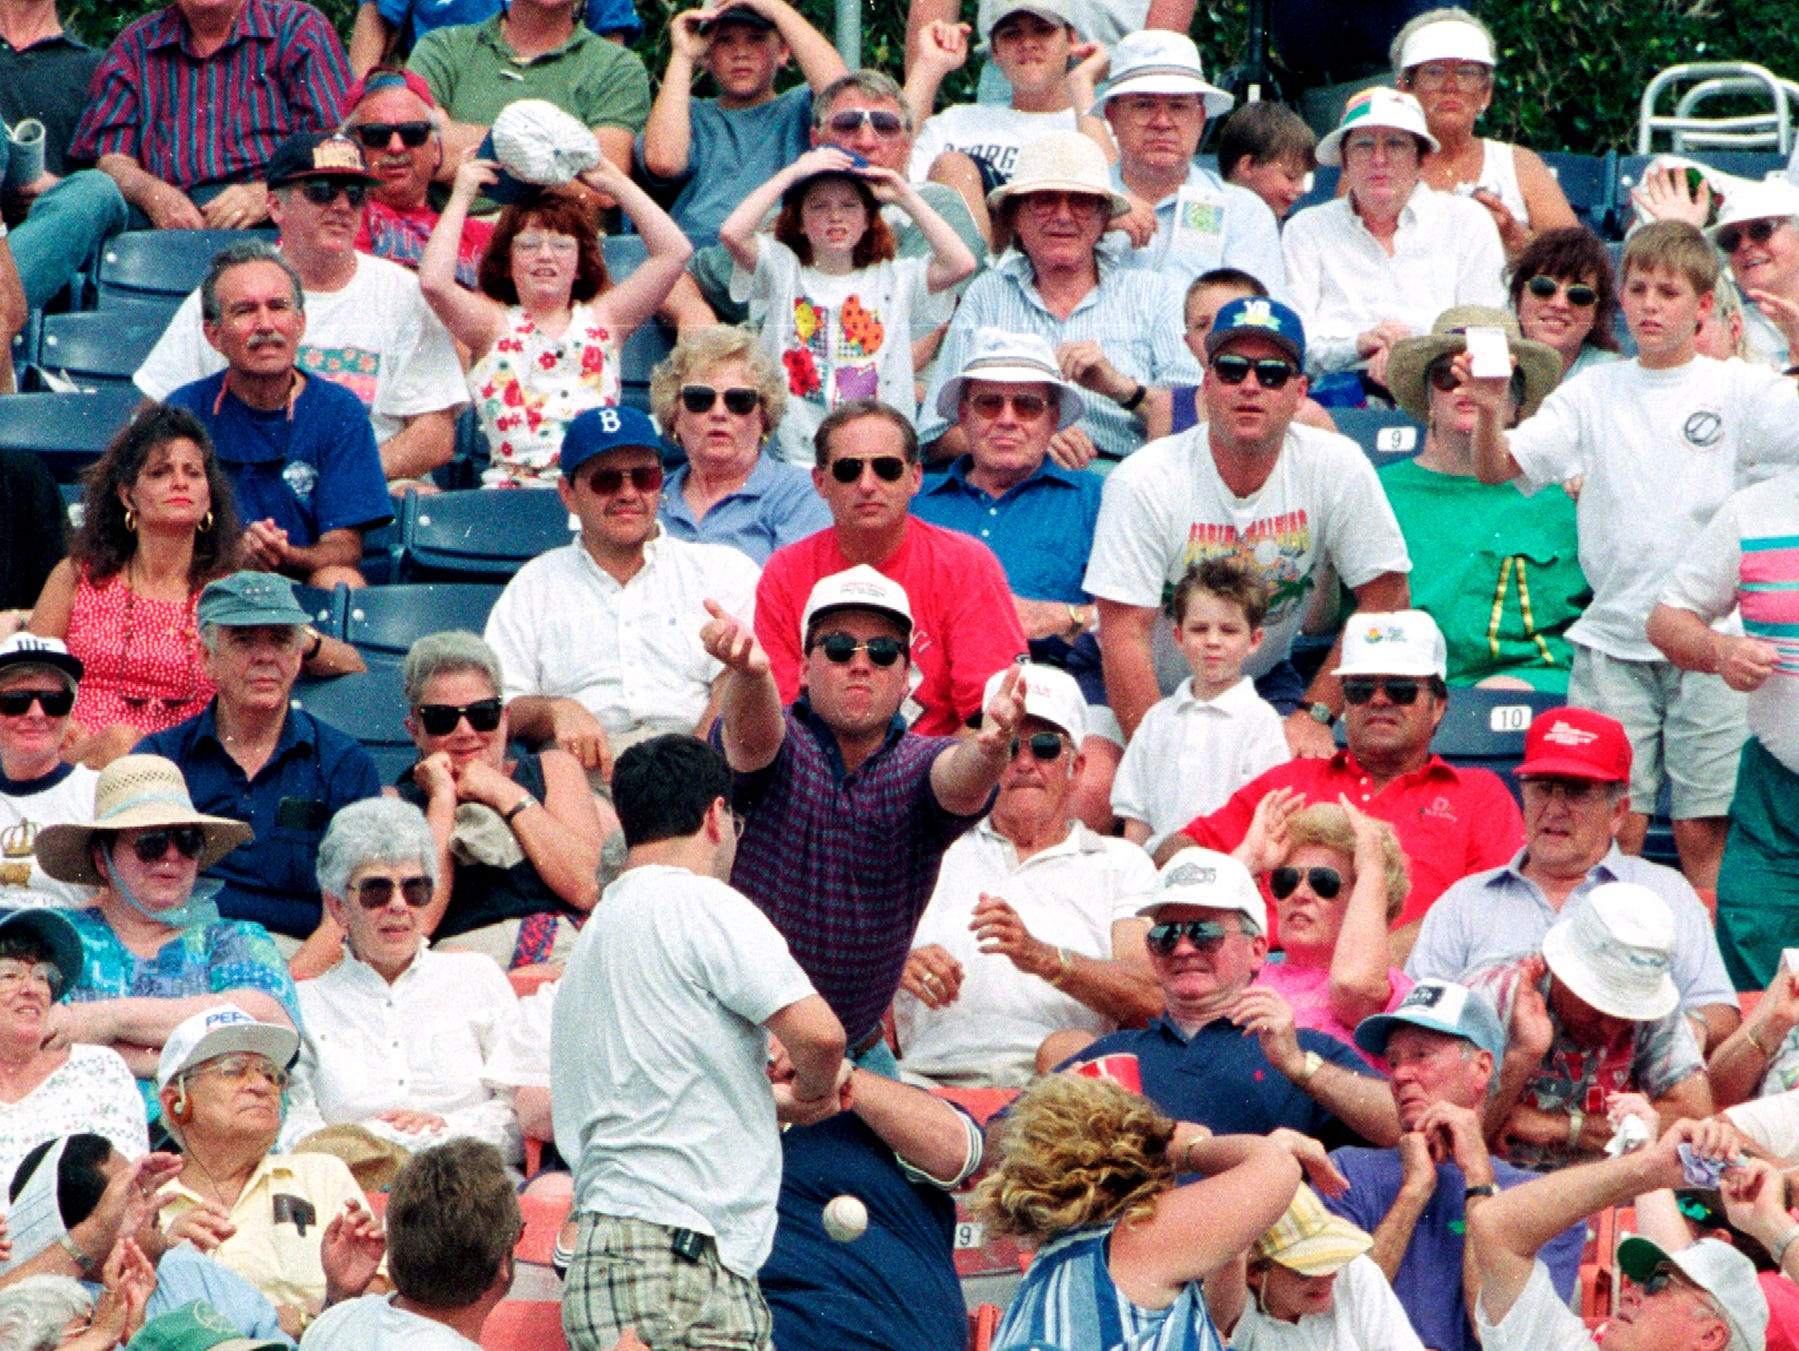 March 27, 1996 - The final game of the Los Angeles Dodgers spring training schedule in 1996, was held at Holman Stadium in Vero Beach. The game was played against the Montreal Expos, with the Dodgers winning 4-2. Some lucky fans got the foul ball, as Expos catcher Tim Spehr watched from the edge of the field.